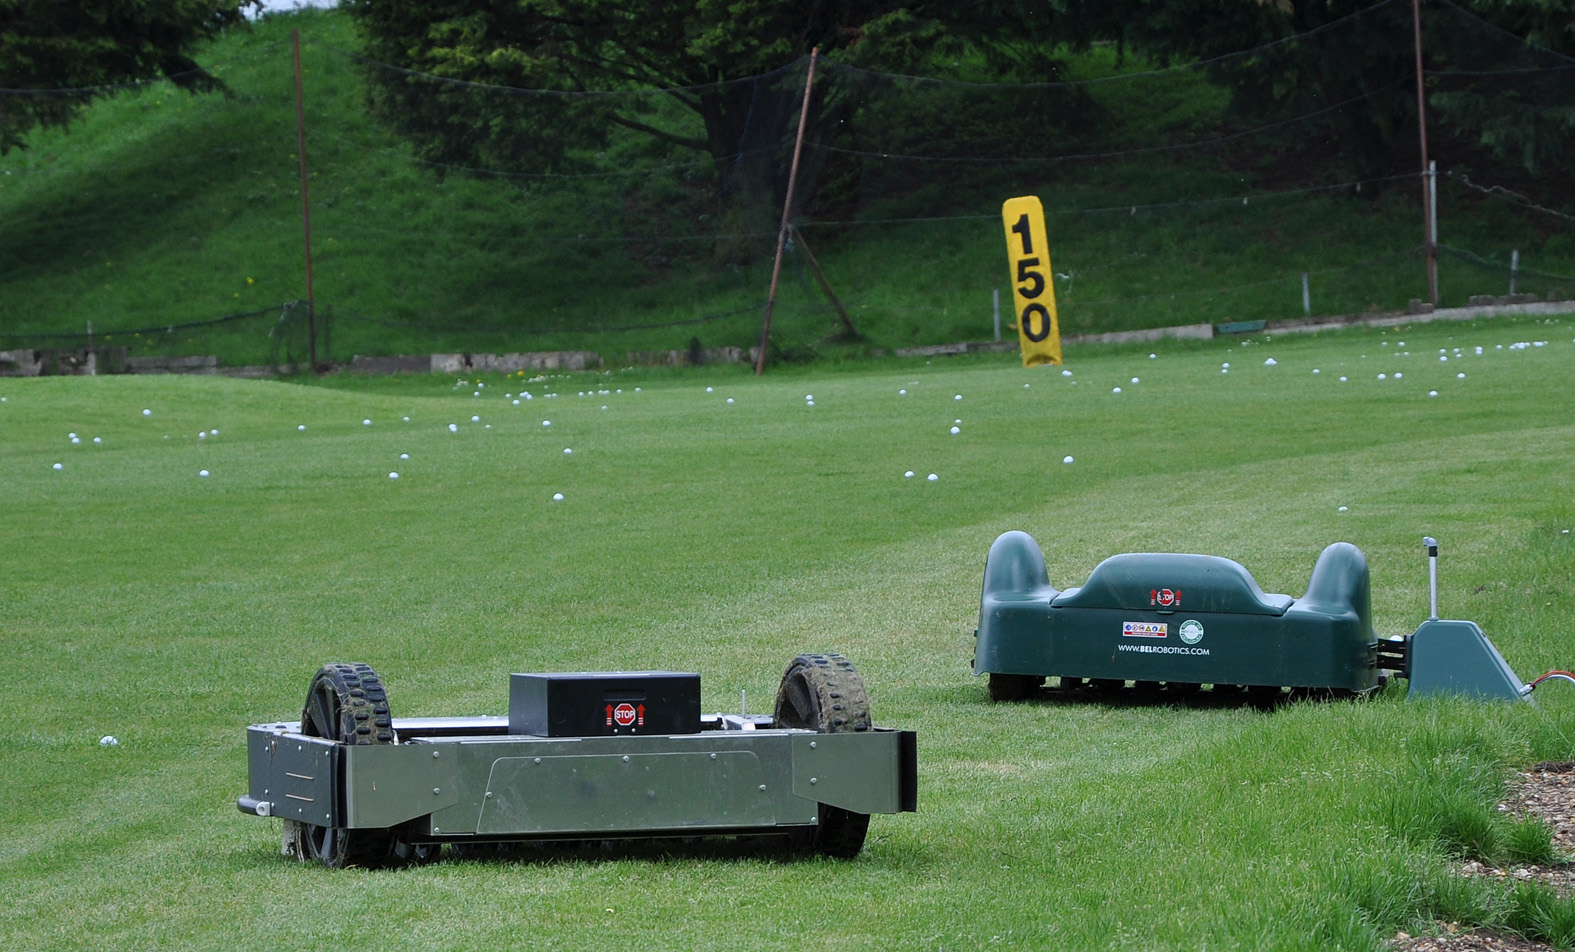 Parley Golf Centre's two new robots - the one in the oreground collects the balls on the driving range and the other cuts the grass.